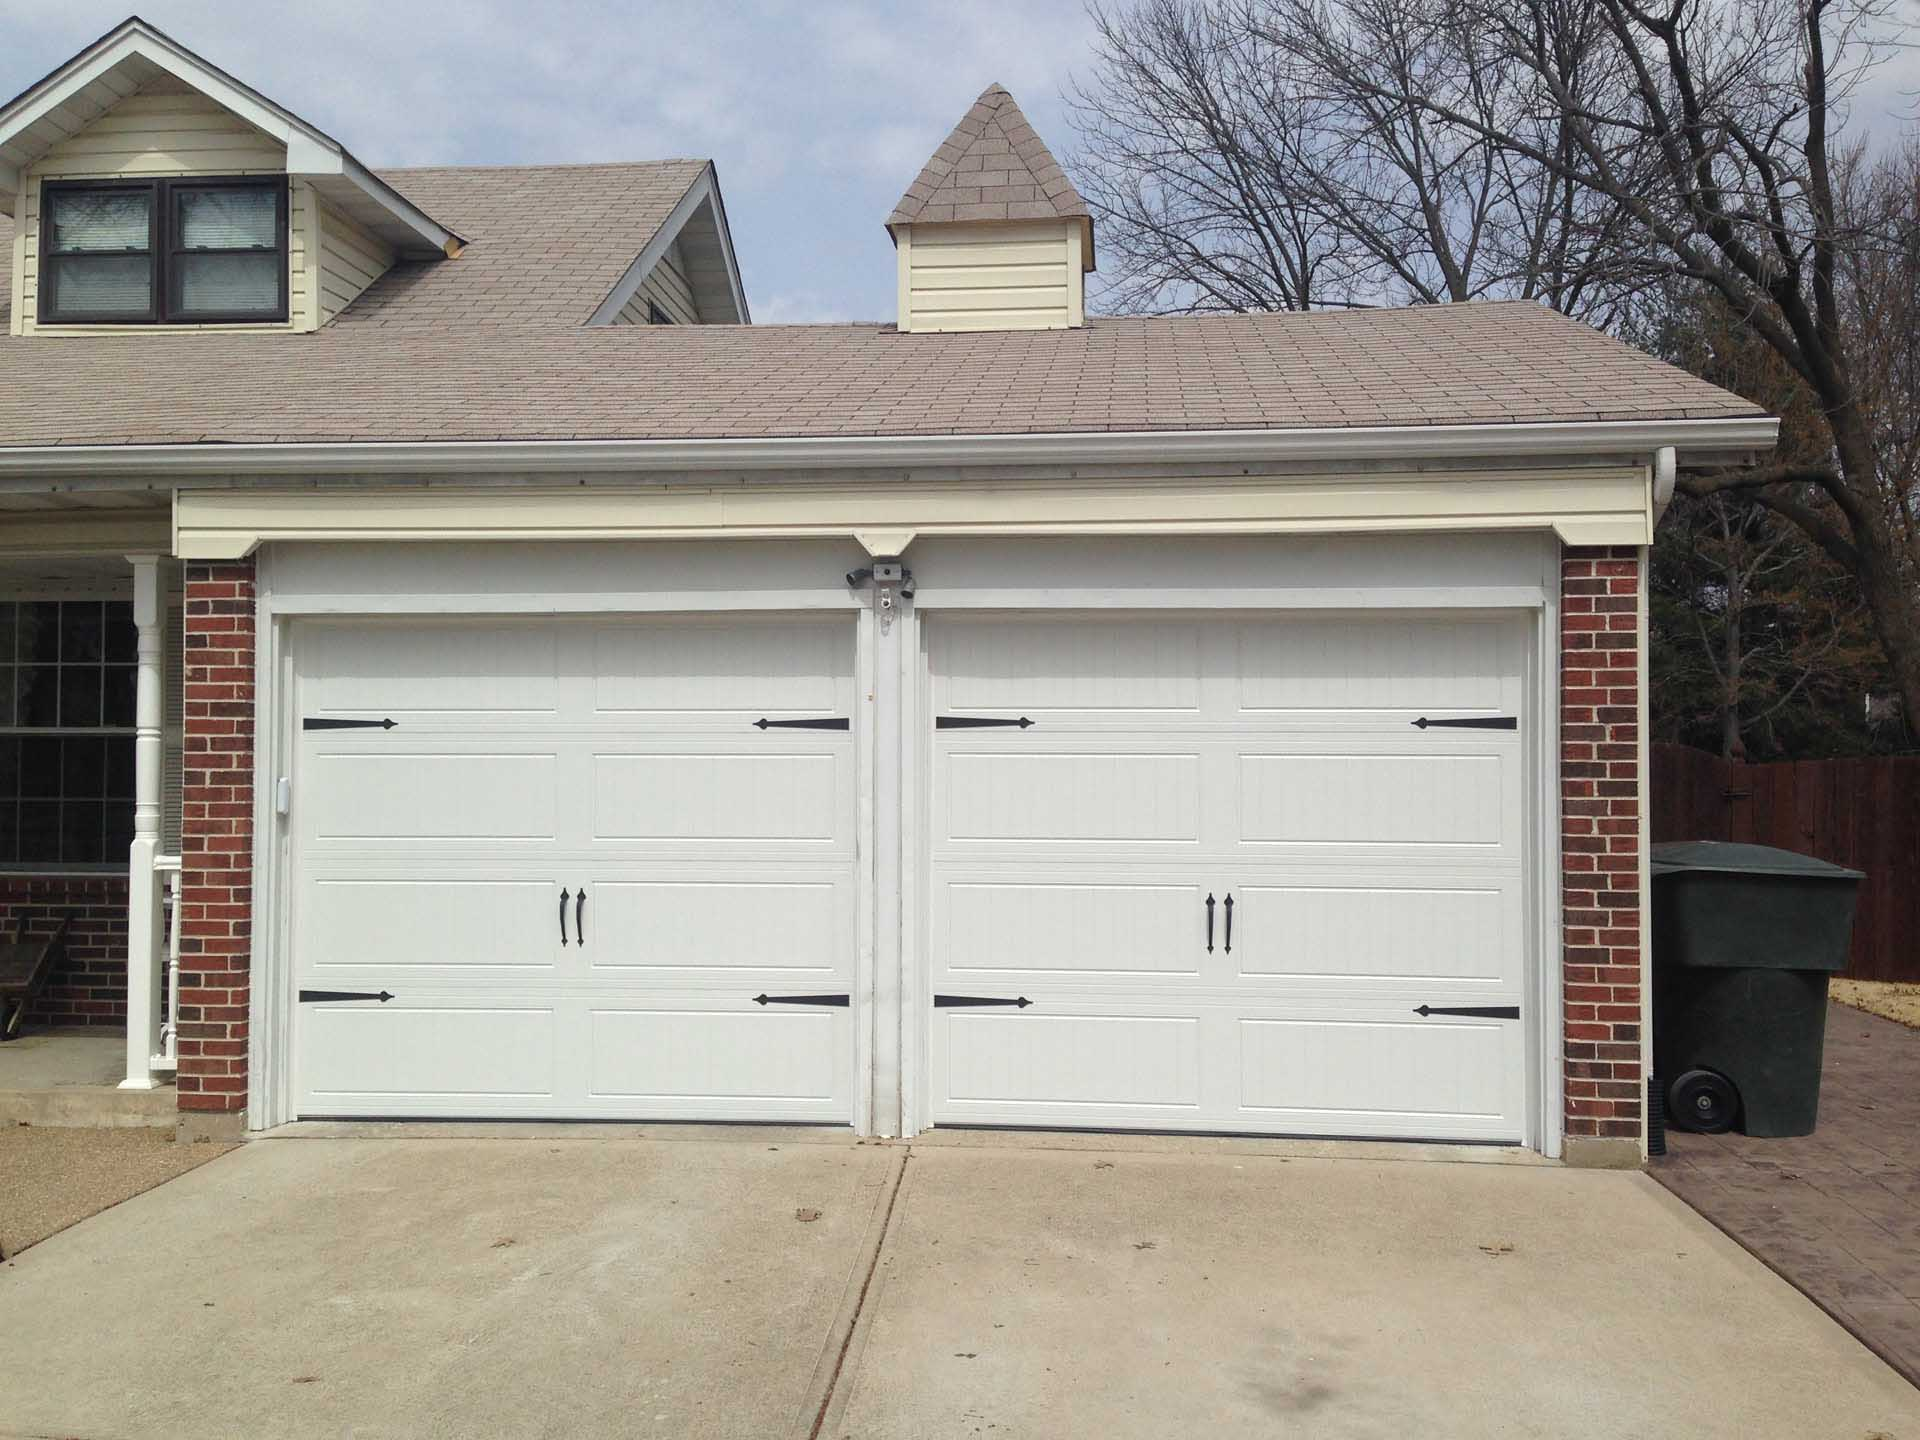 Garage Doors St Louis, Chesterfield, And St Charles Mo. Mobile Garage Door Mechanic. Garage Door Sale. Exterior Double Doors. Fairview Garage Door. Modern Glass Fireplace Doors. Glass Door Repair. Automatic Door Opener. Garage Door Sweep Seal